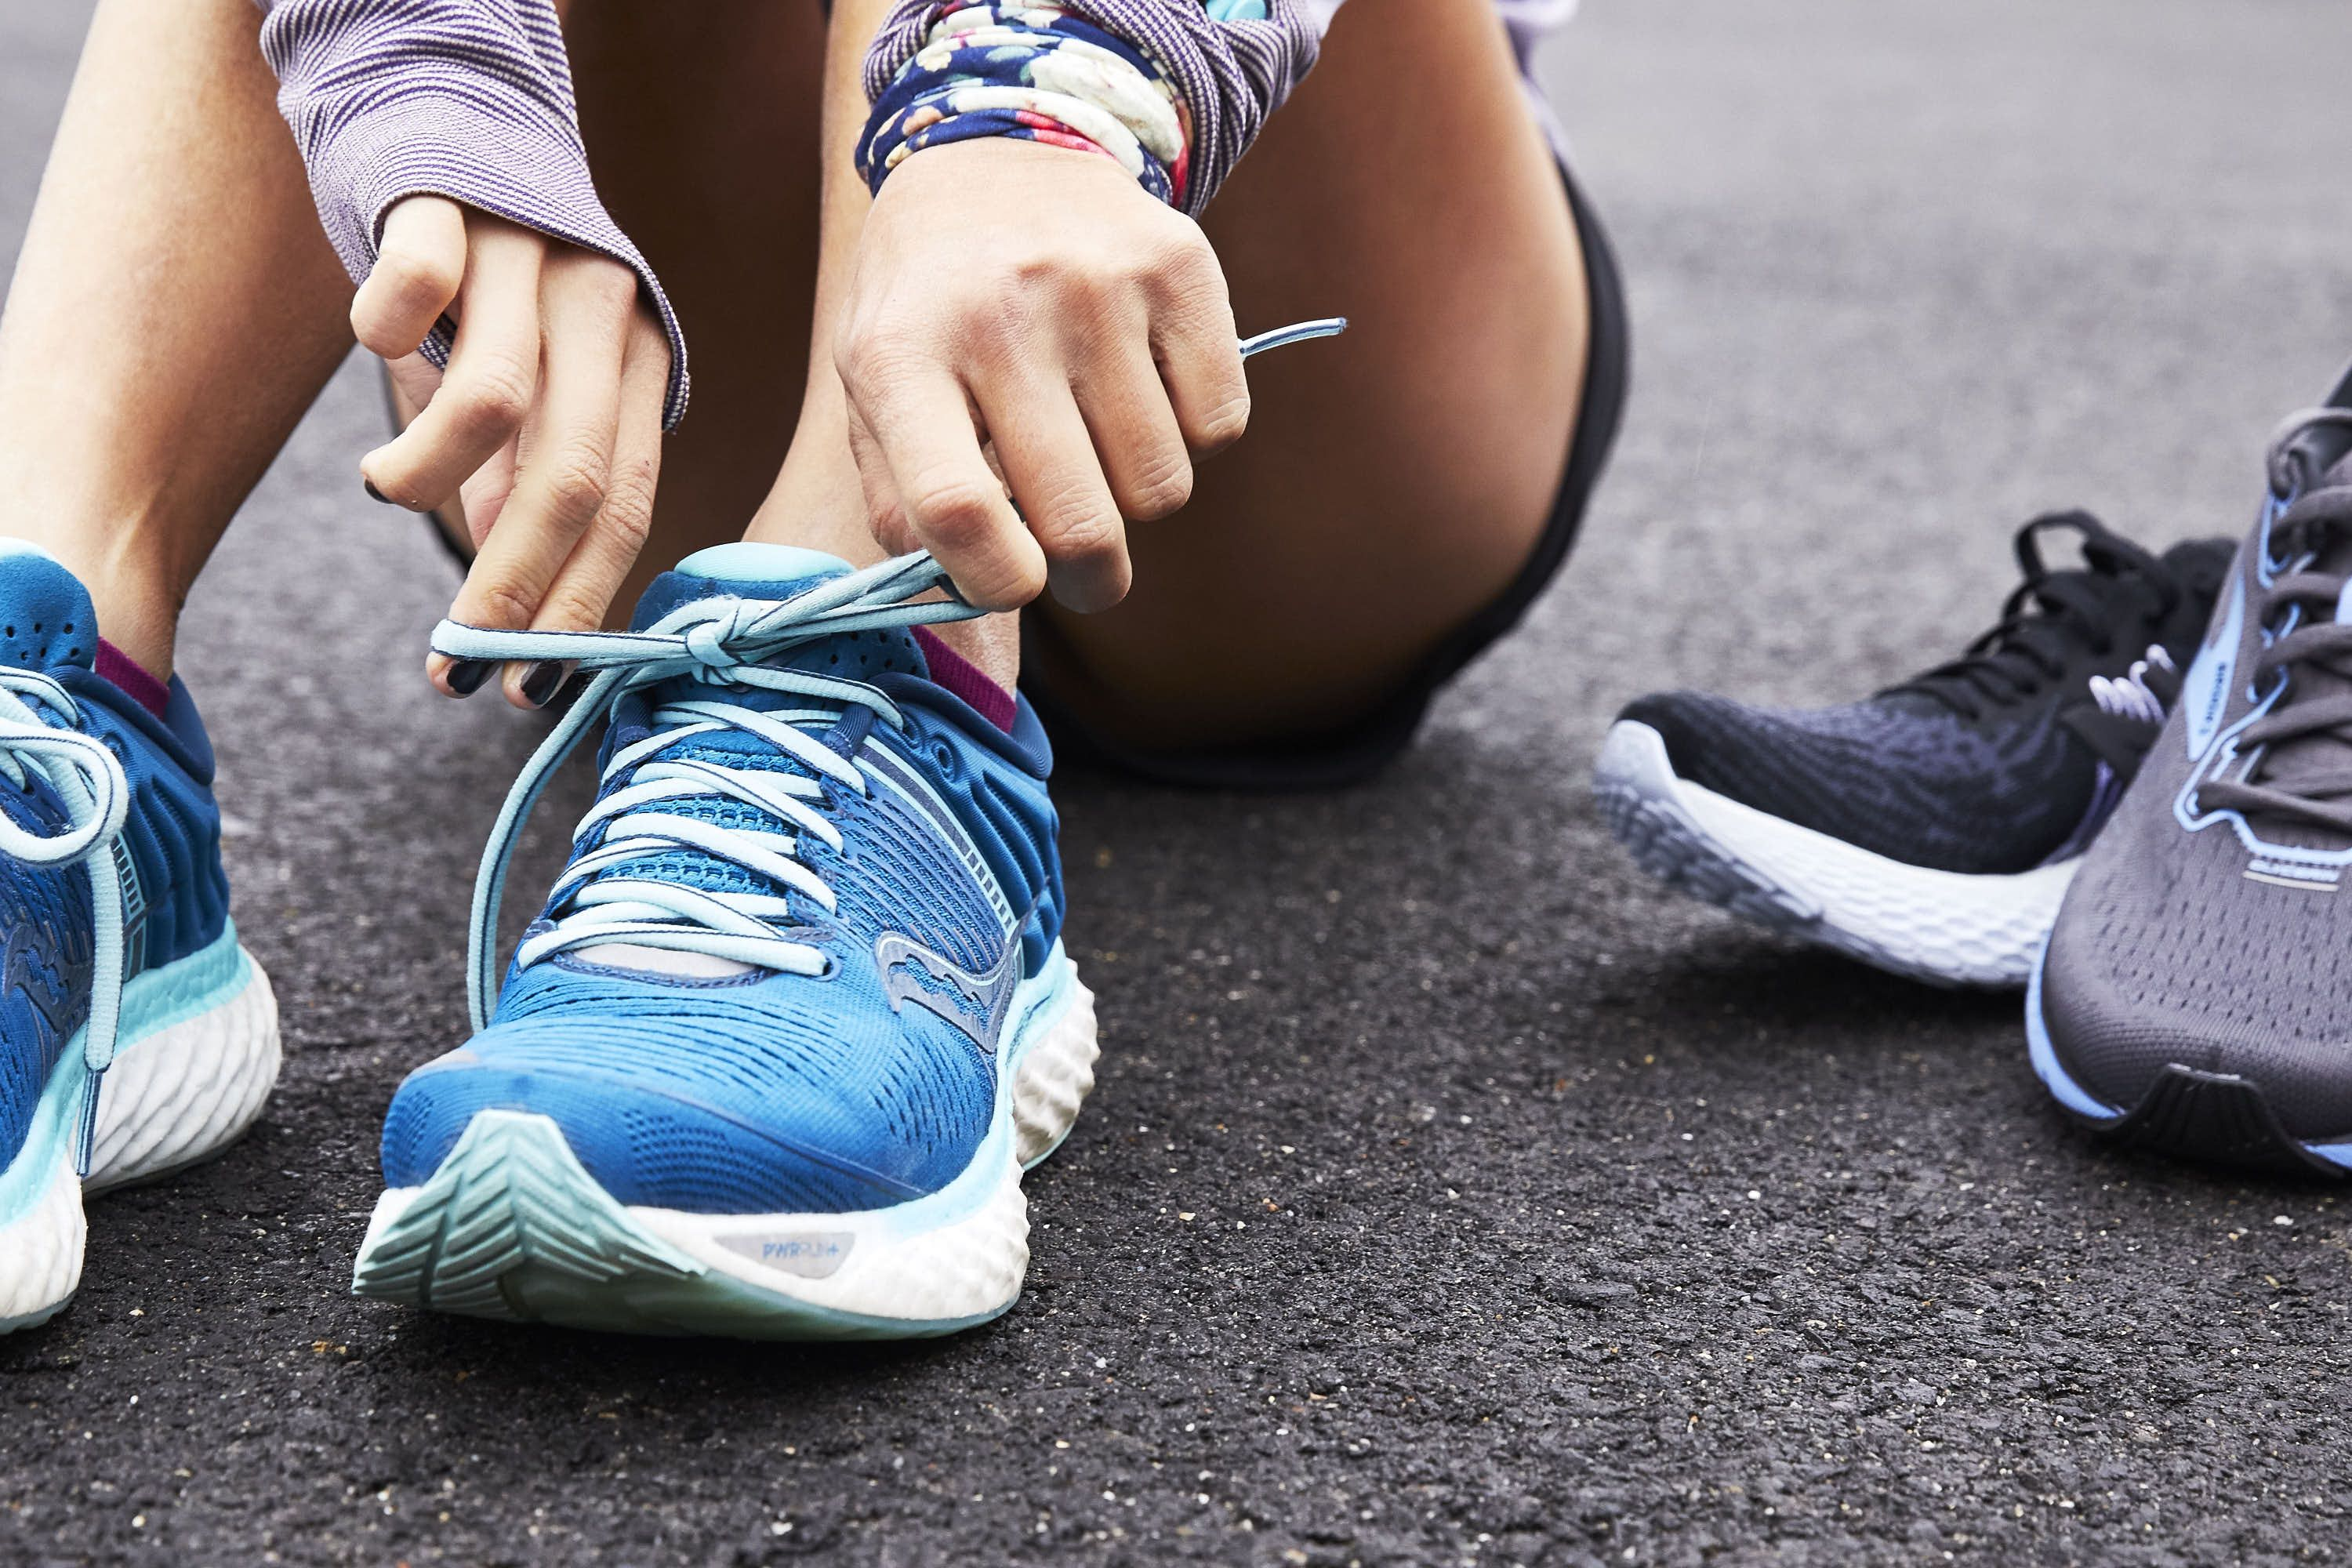 Your Running Shoes, While Comfortable, May Be Making Your Feet Weaker